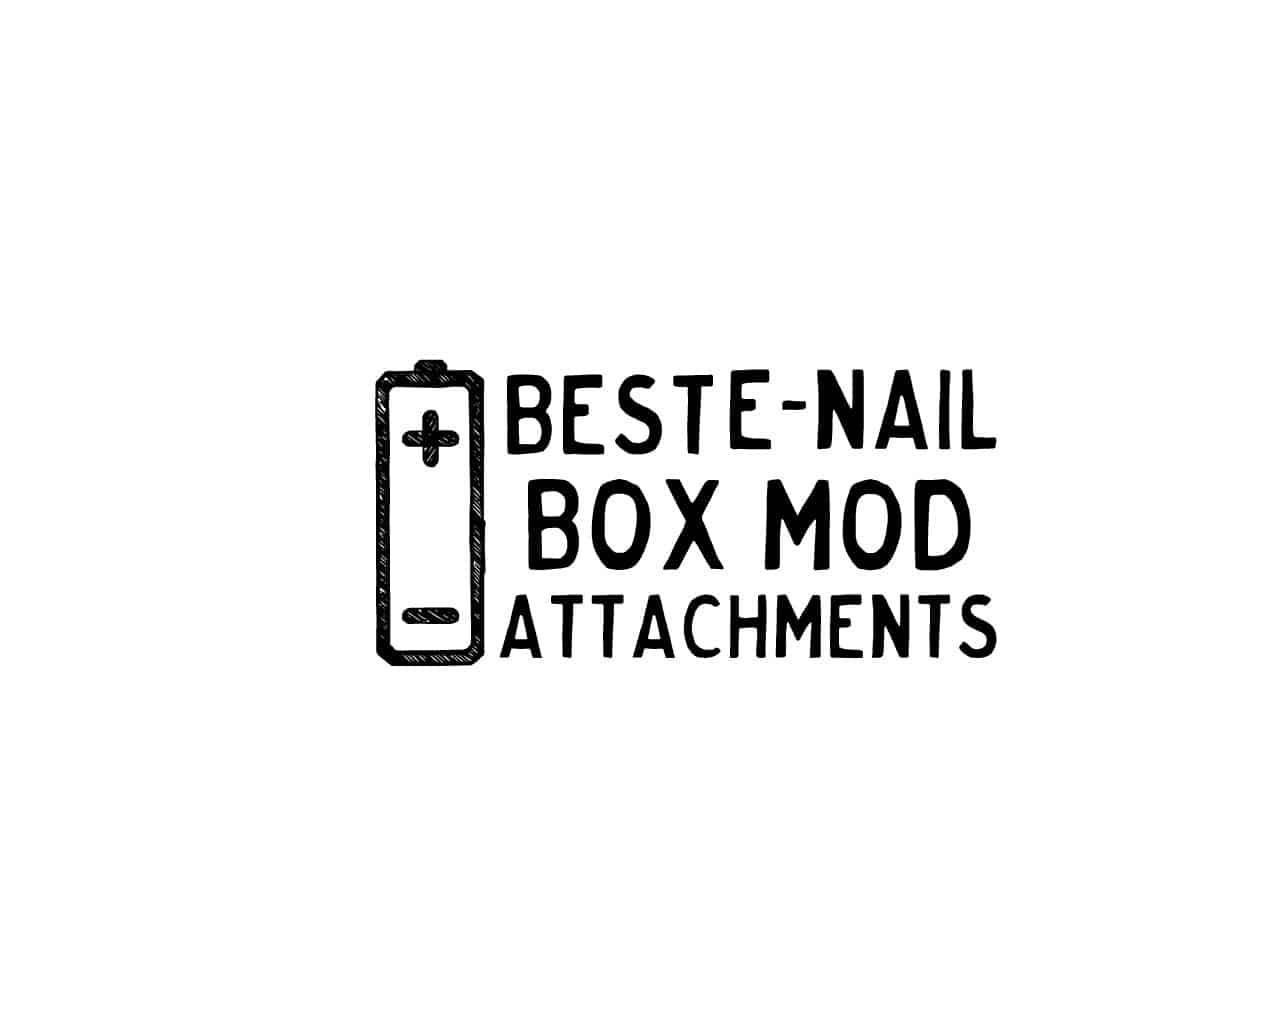 Find The Best E Nail Box Mod Attachments Updated For